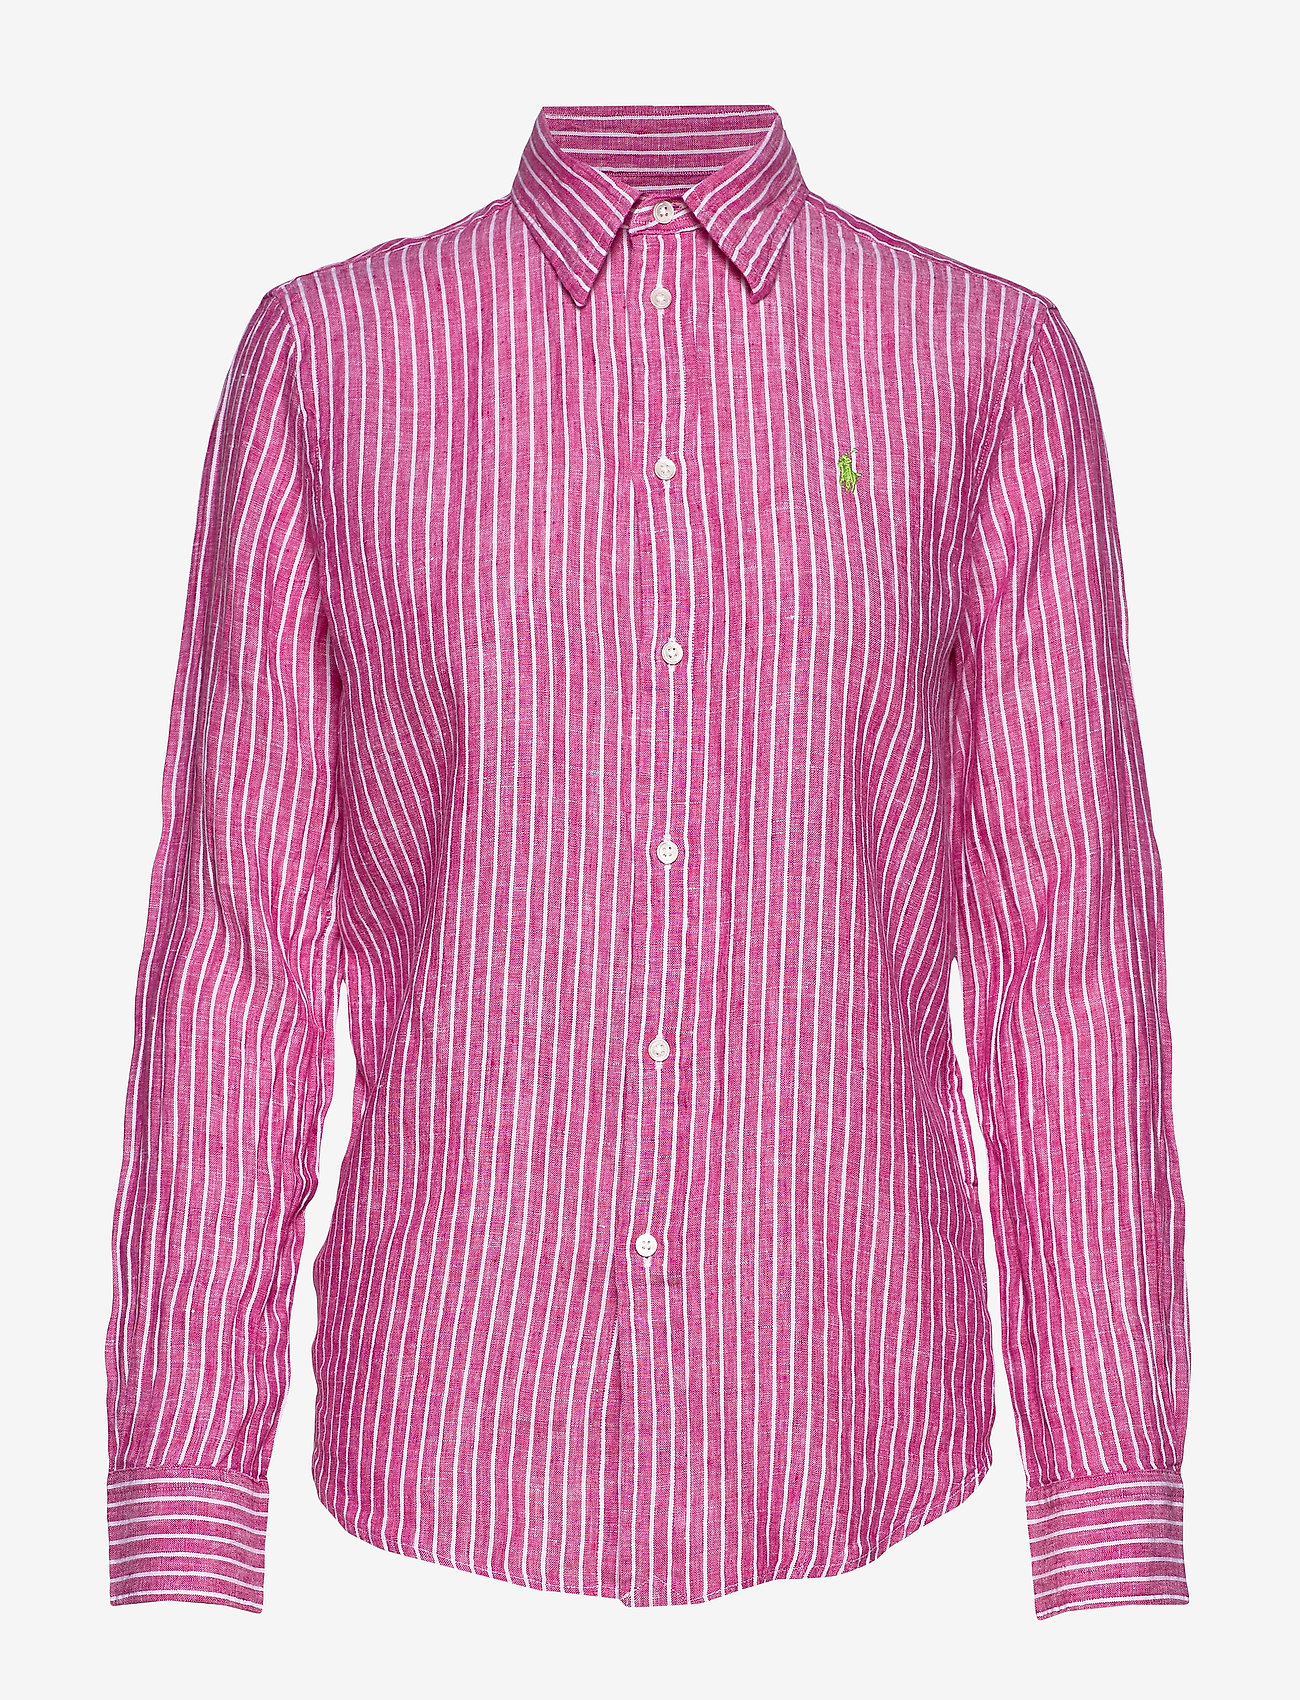 Polo Ralph Lauren - Relaxed Fit Linen Shirt - long-sleeved shirts - 542a pink/white - 0